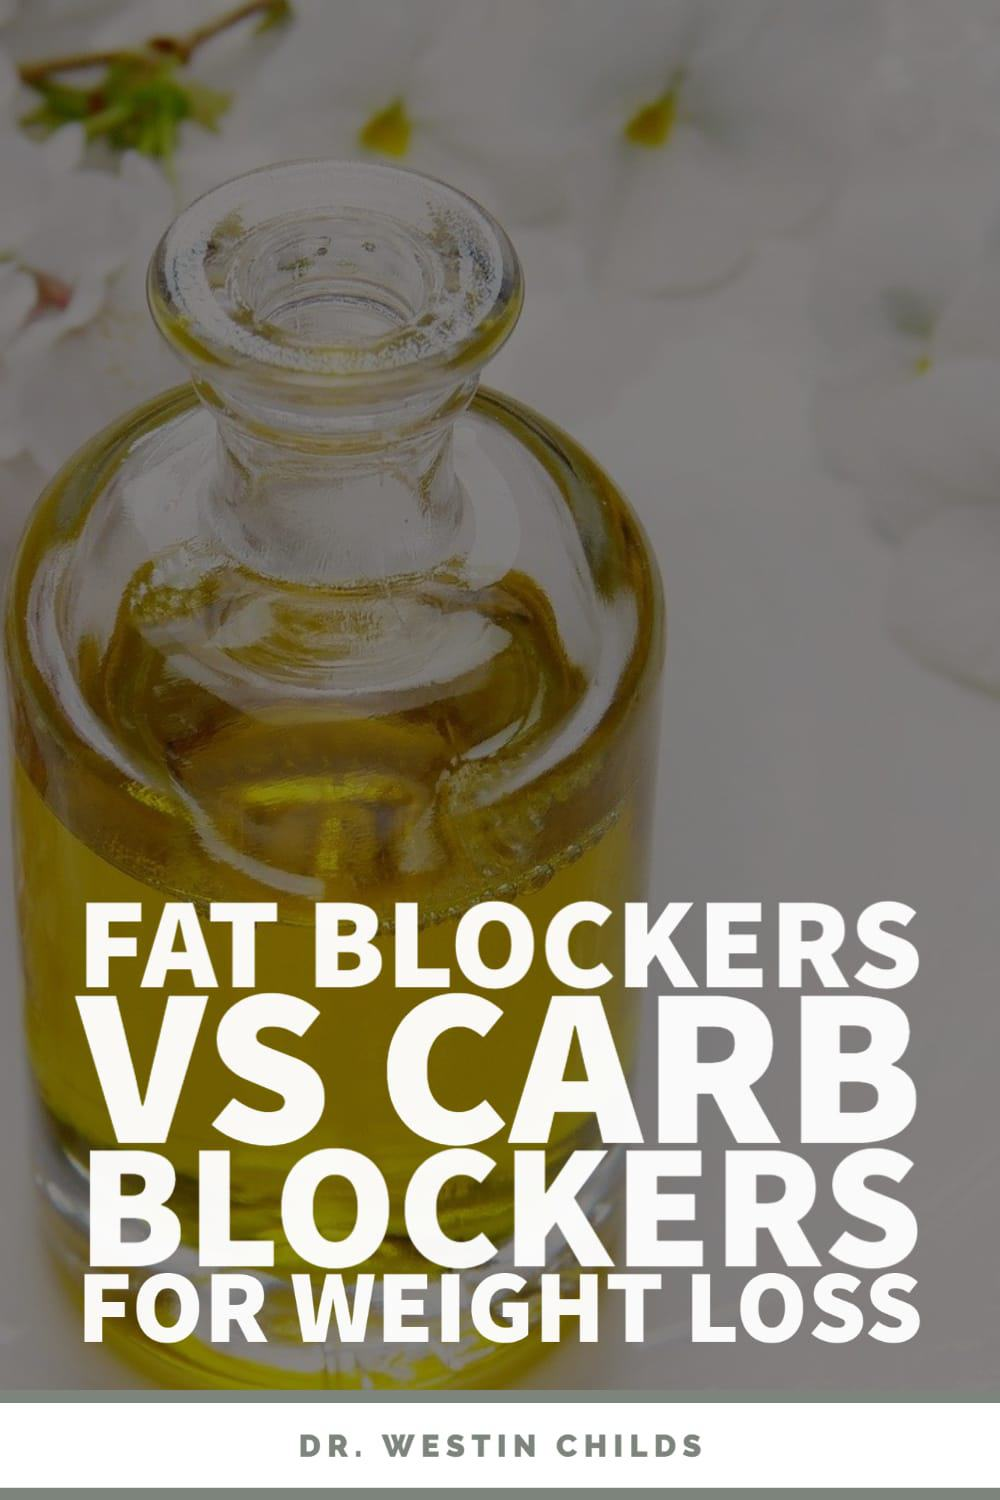 carb blockers vs fat blockers for weight loss